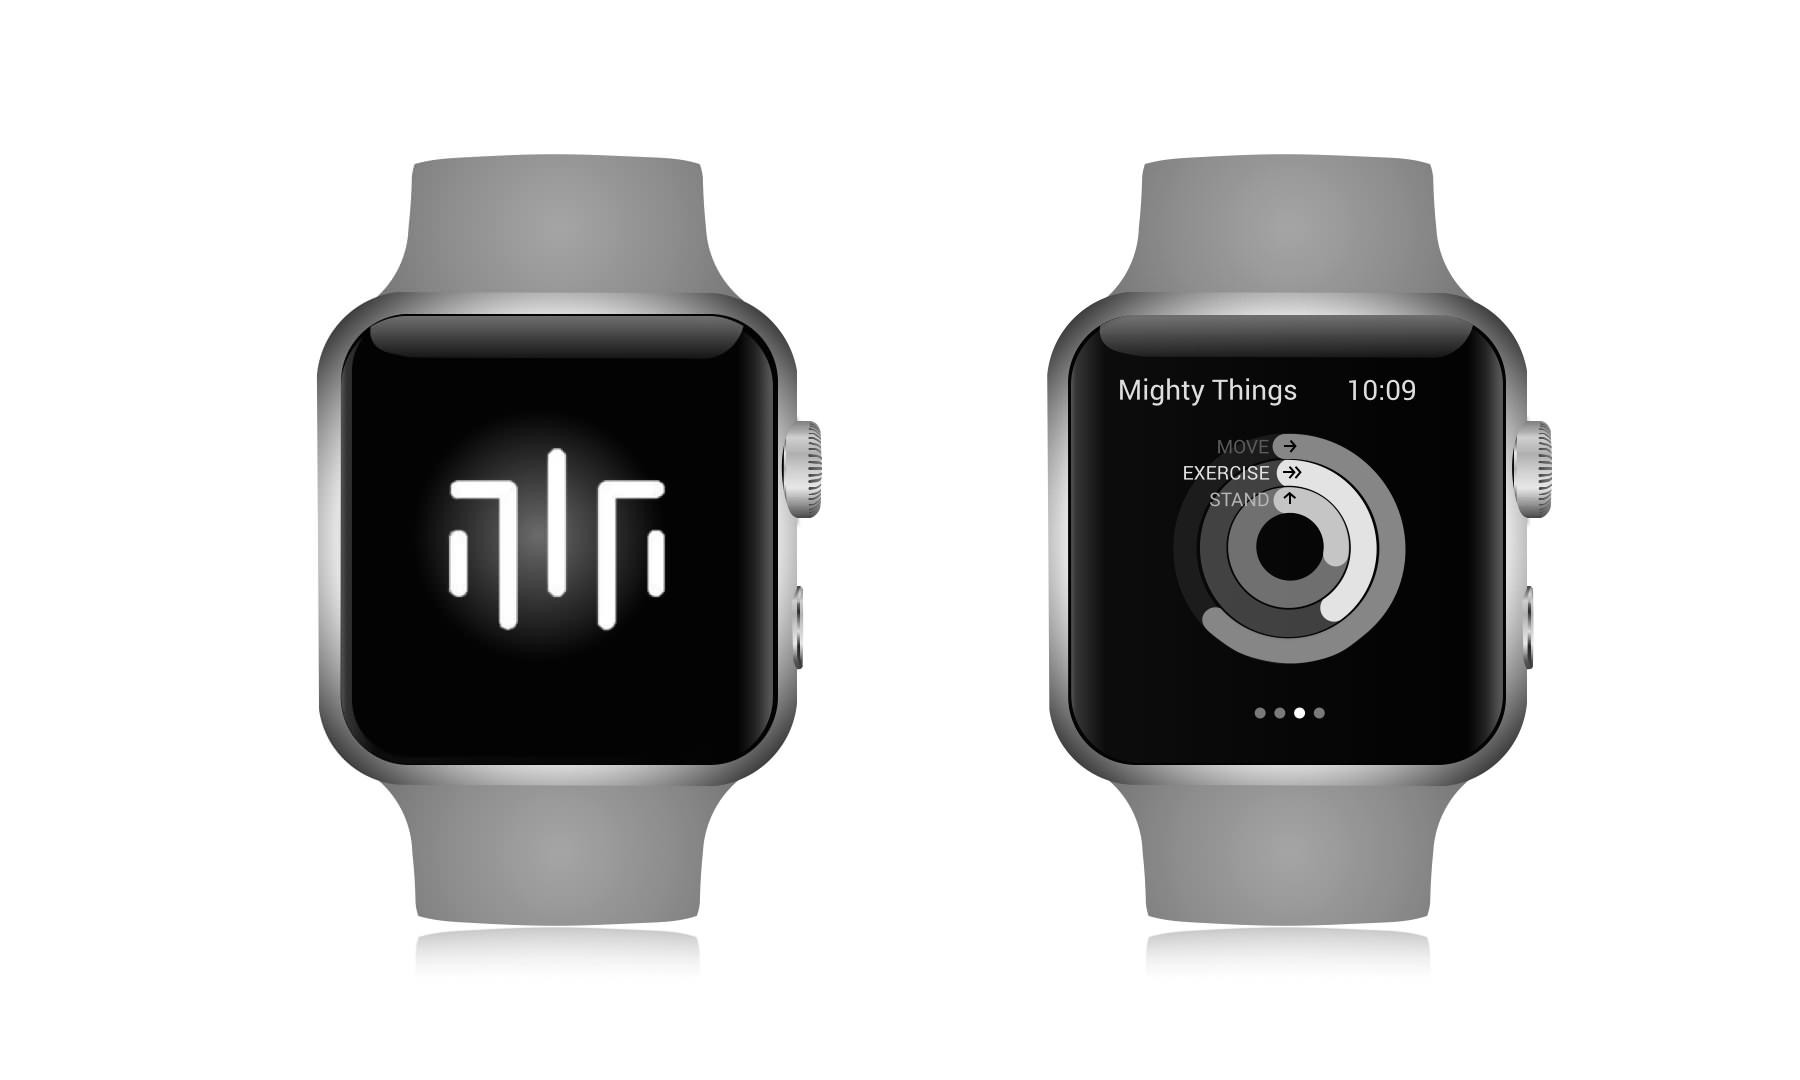 Mighty Things | Wearable Tech